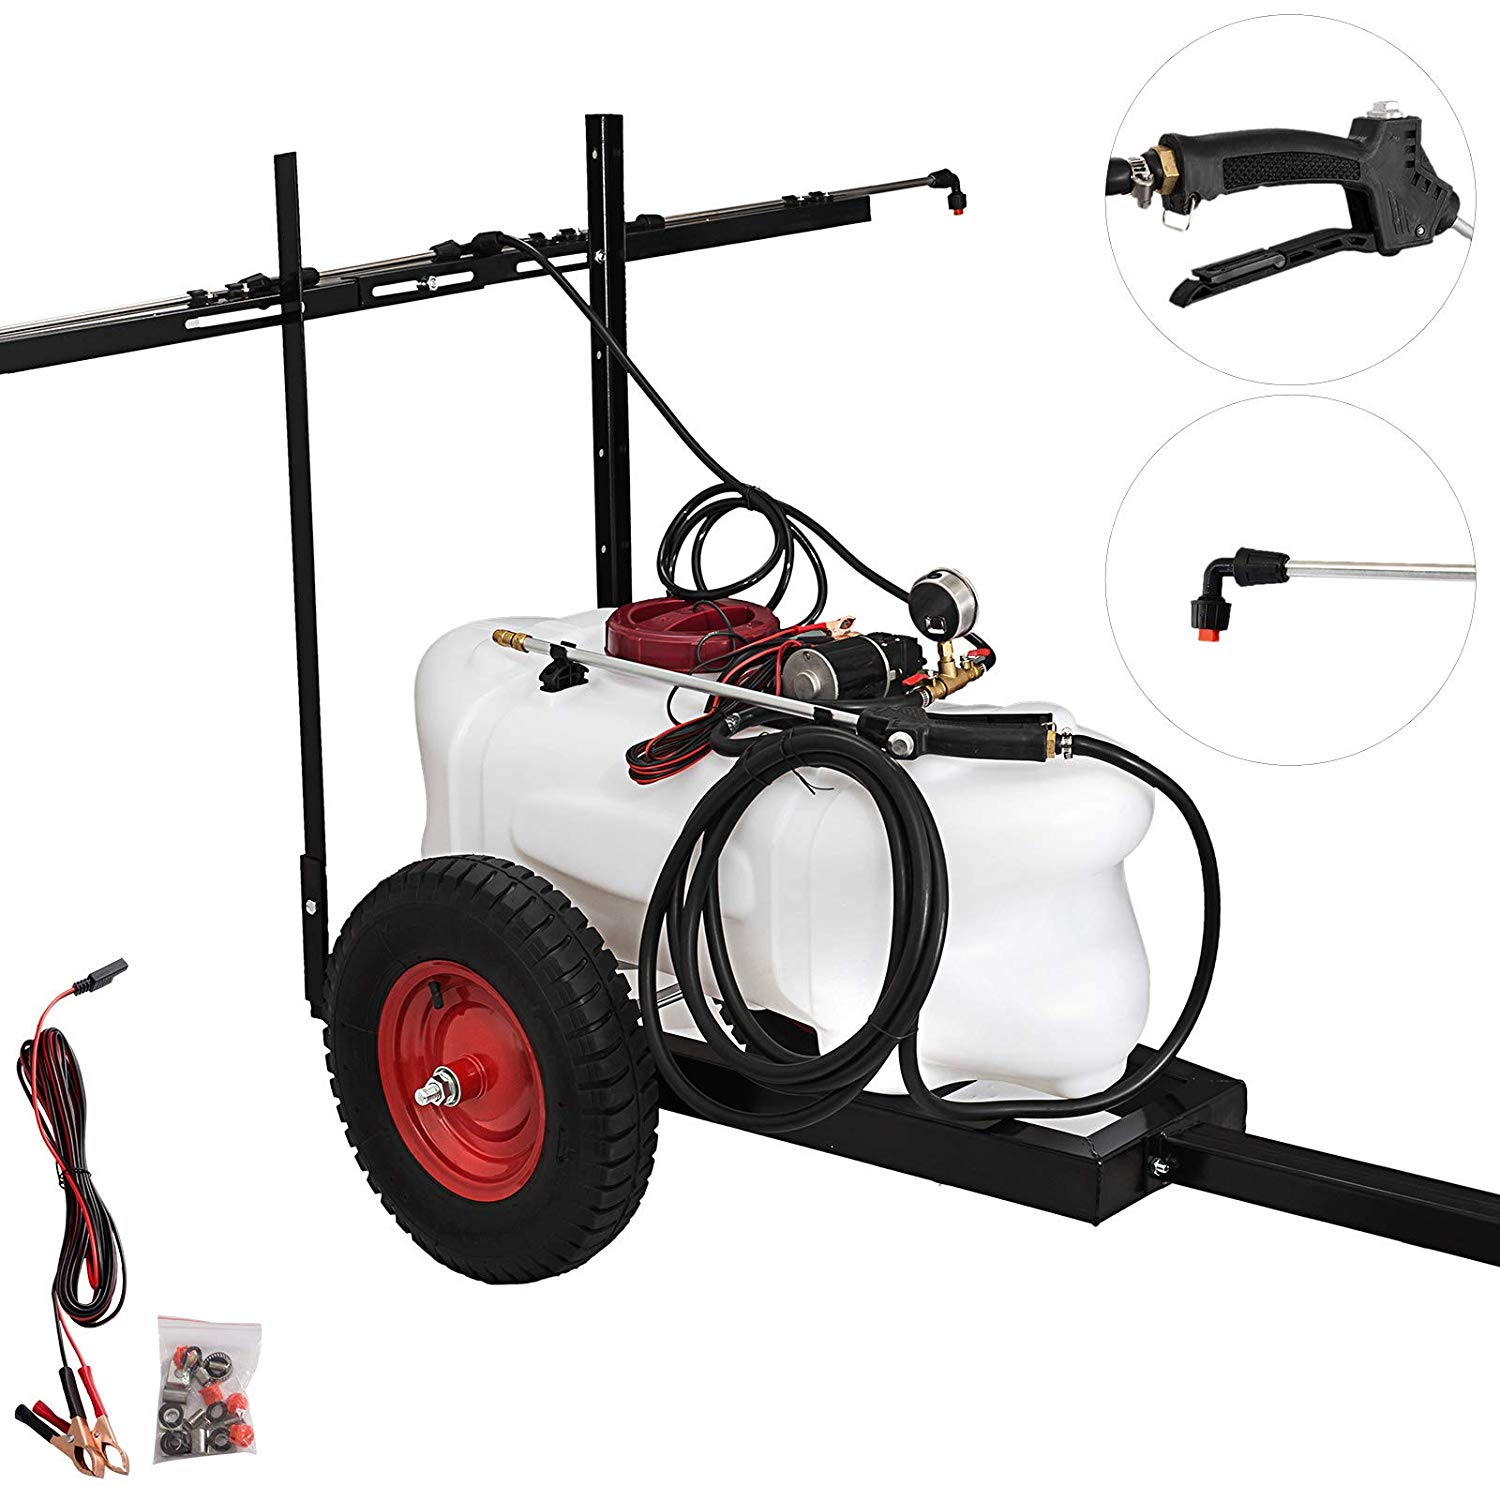 6 Best Sprayers For ATV With Booms 2020 Ultimate GuideBest Garden Outdoor Lawn | 2019 2020 2021 2022